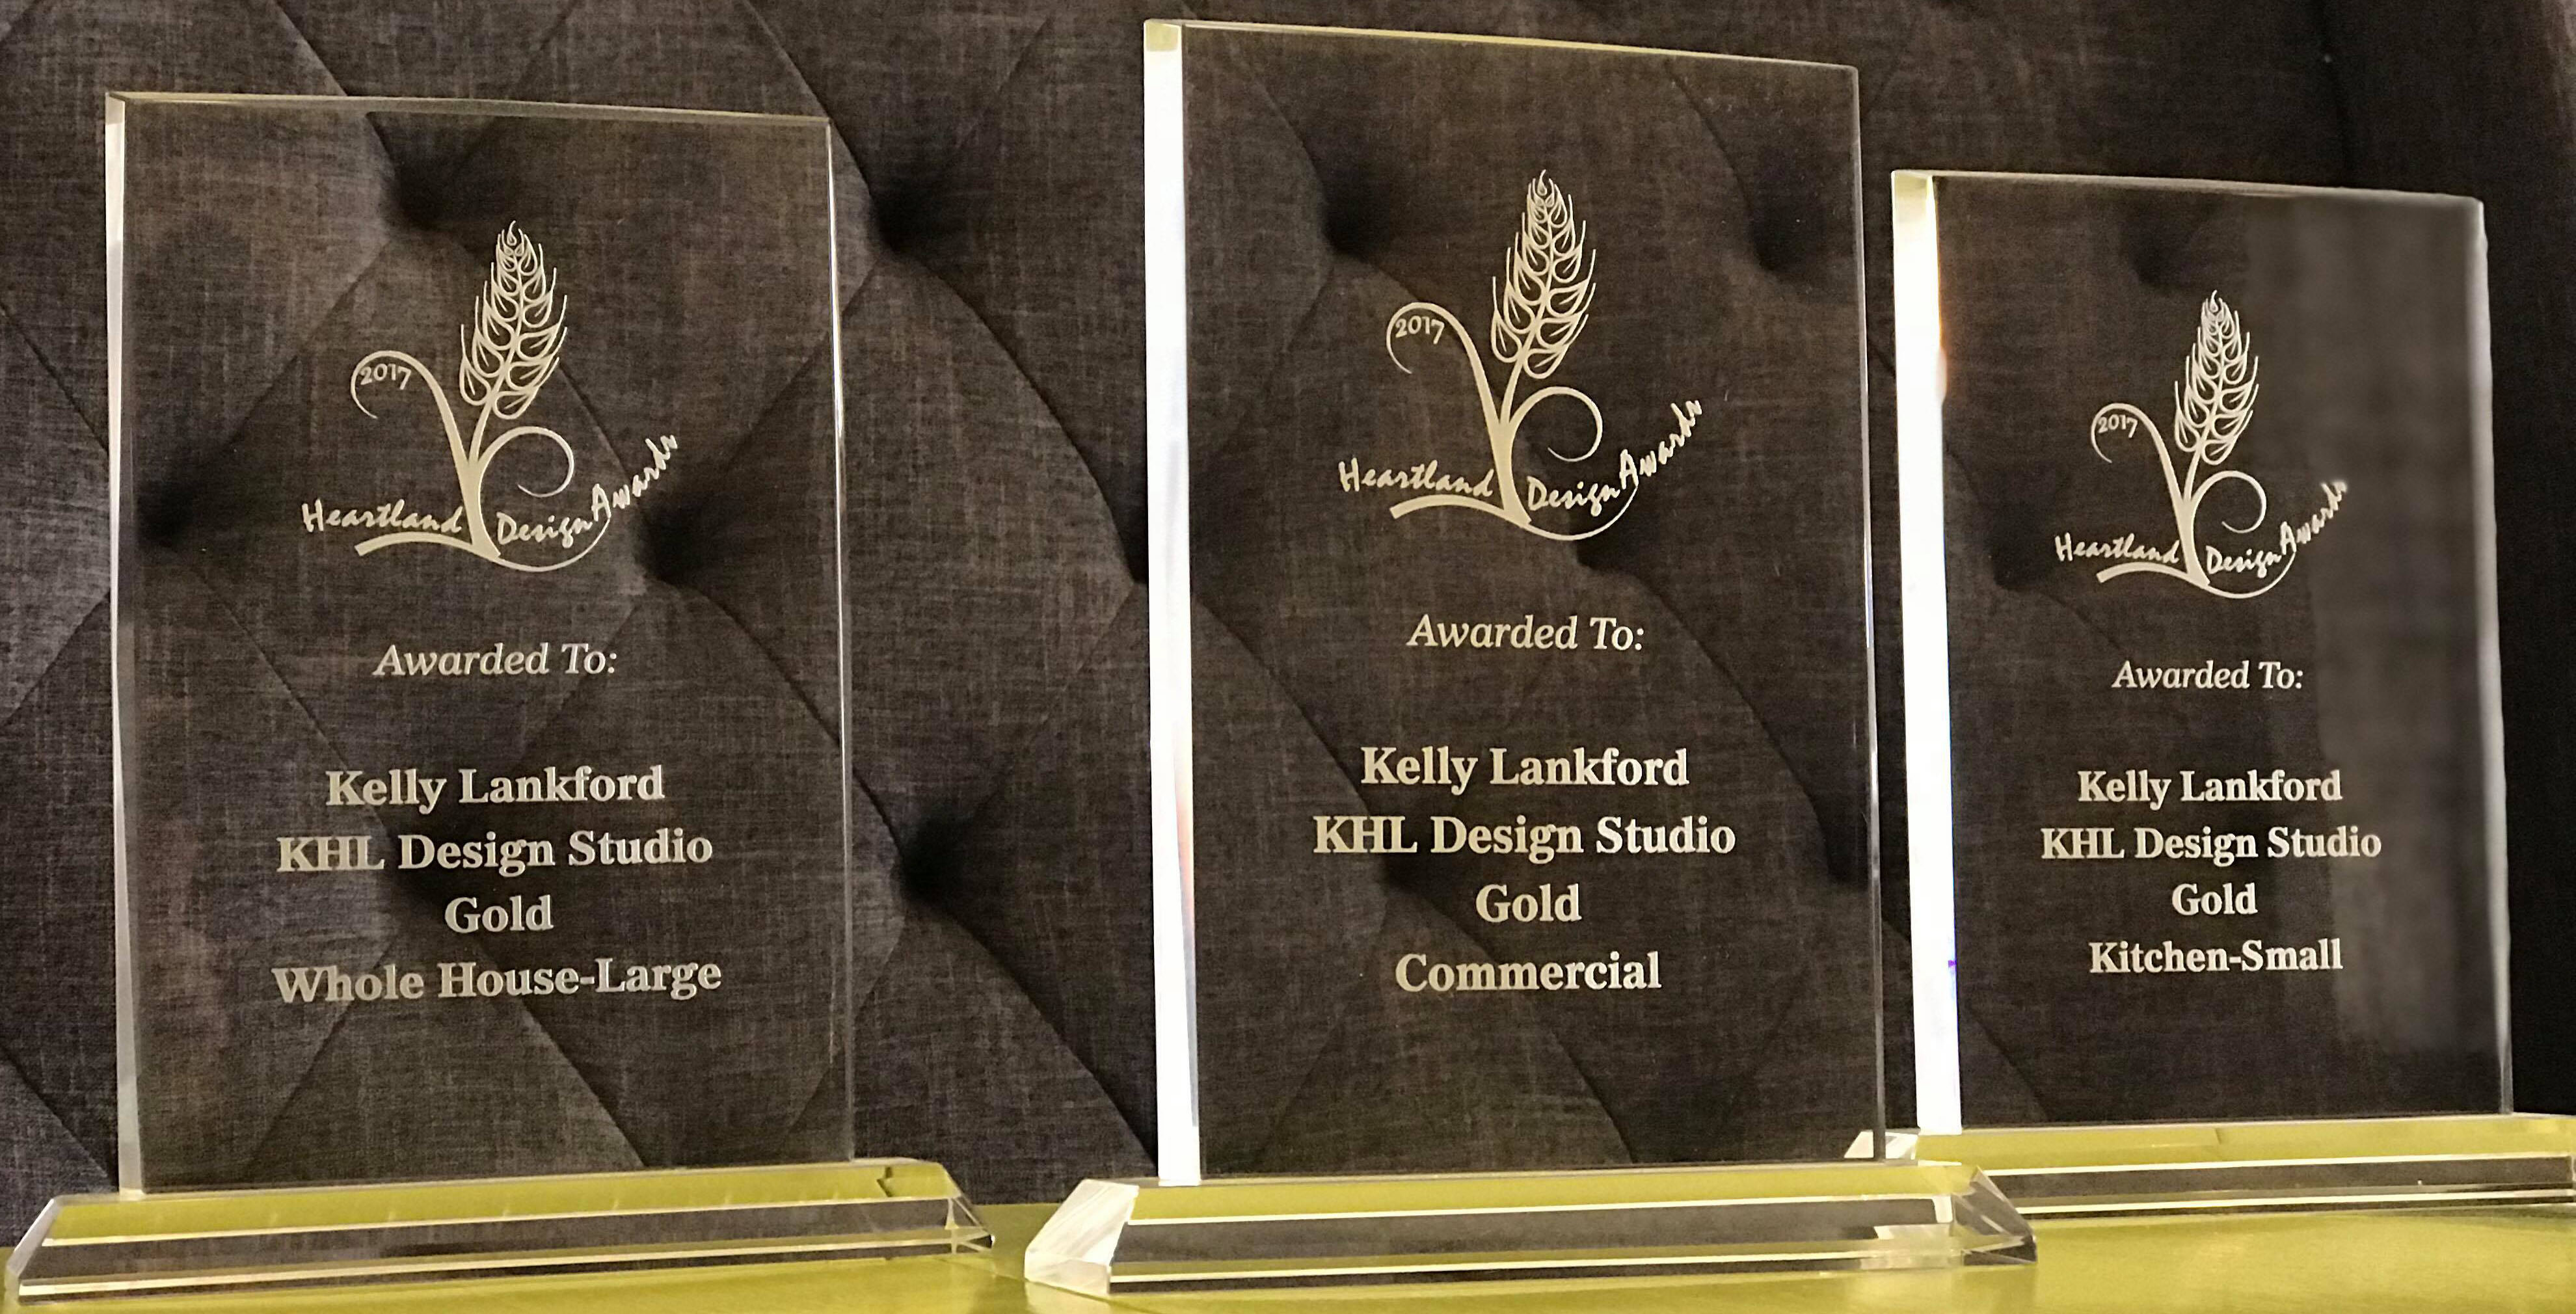 picture of awards won by KHL Design Studio